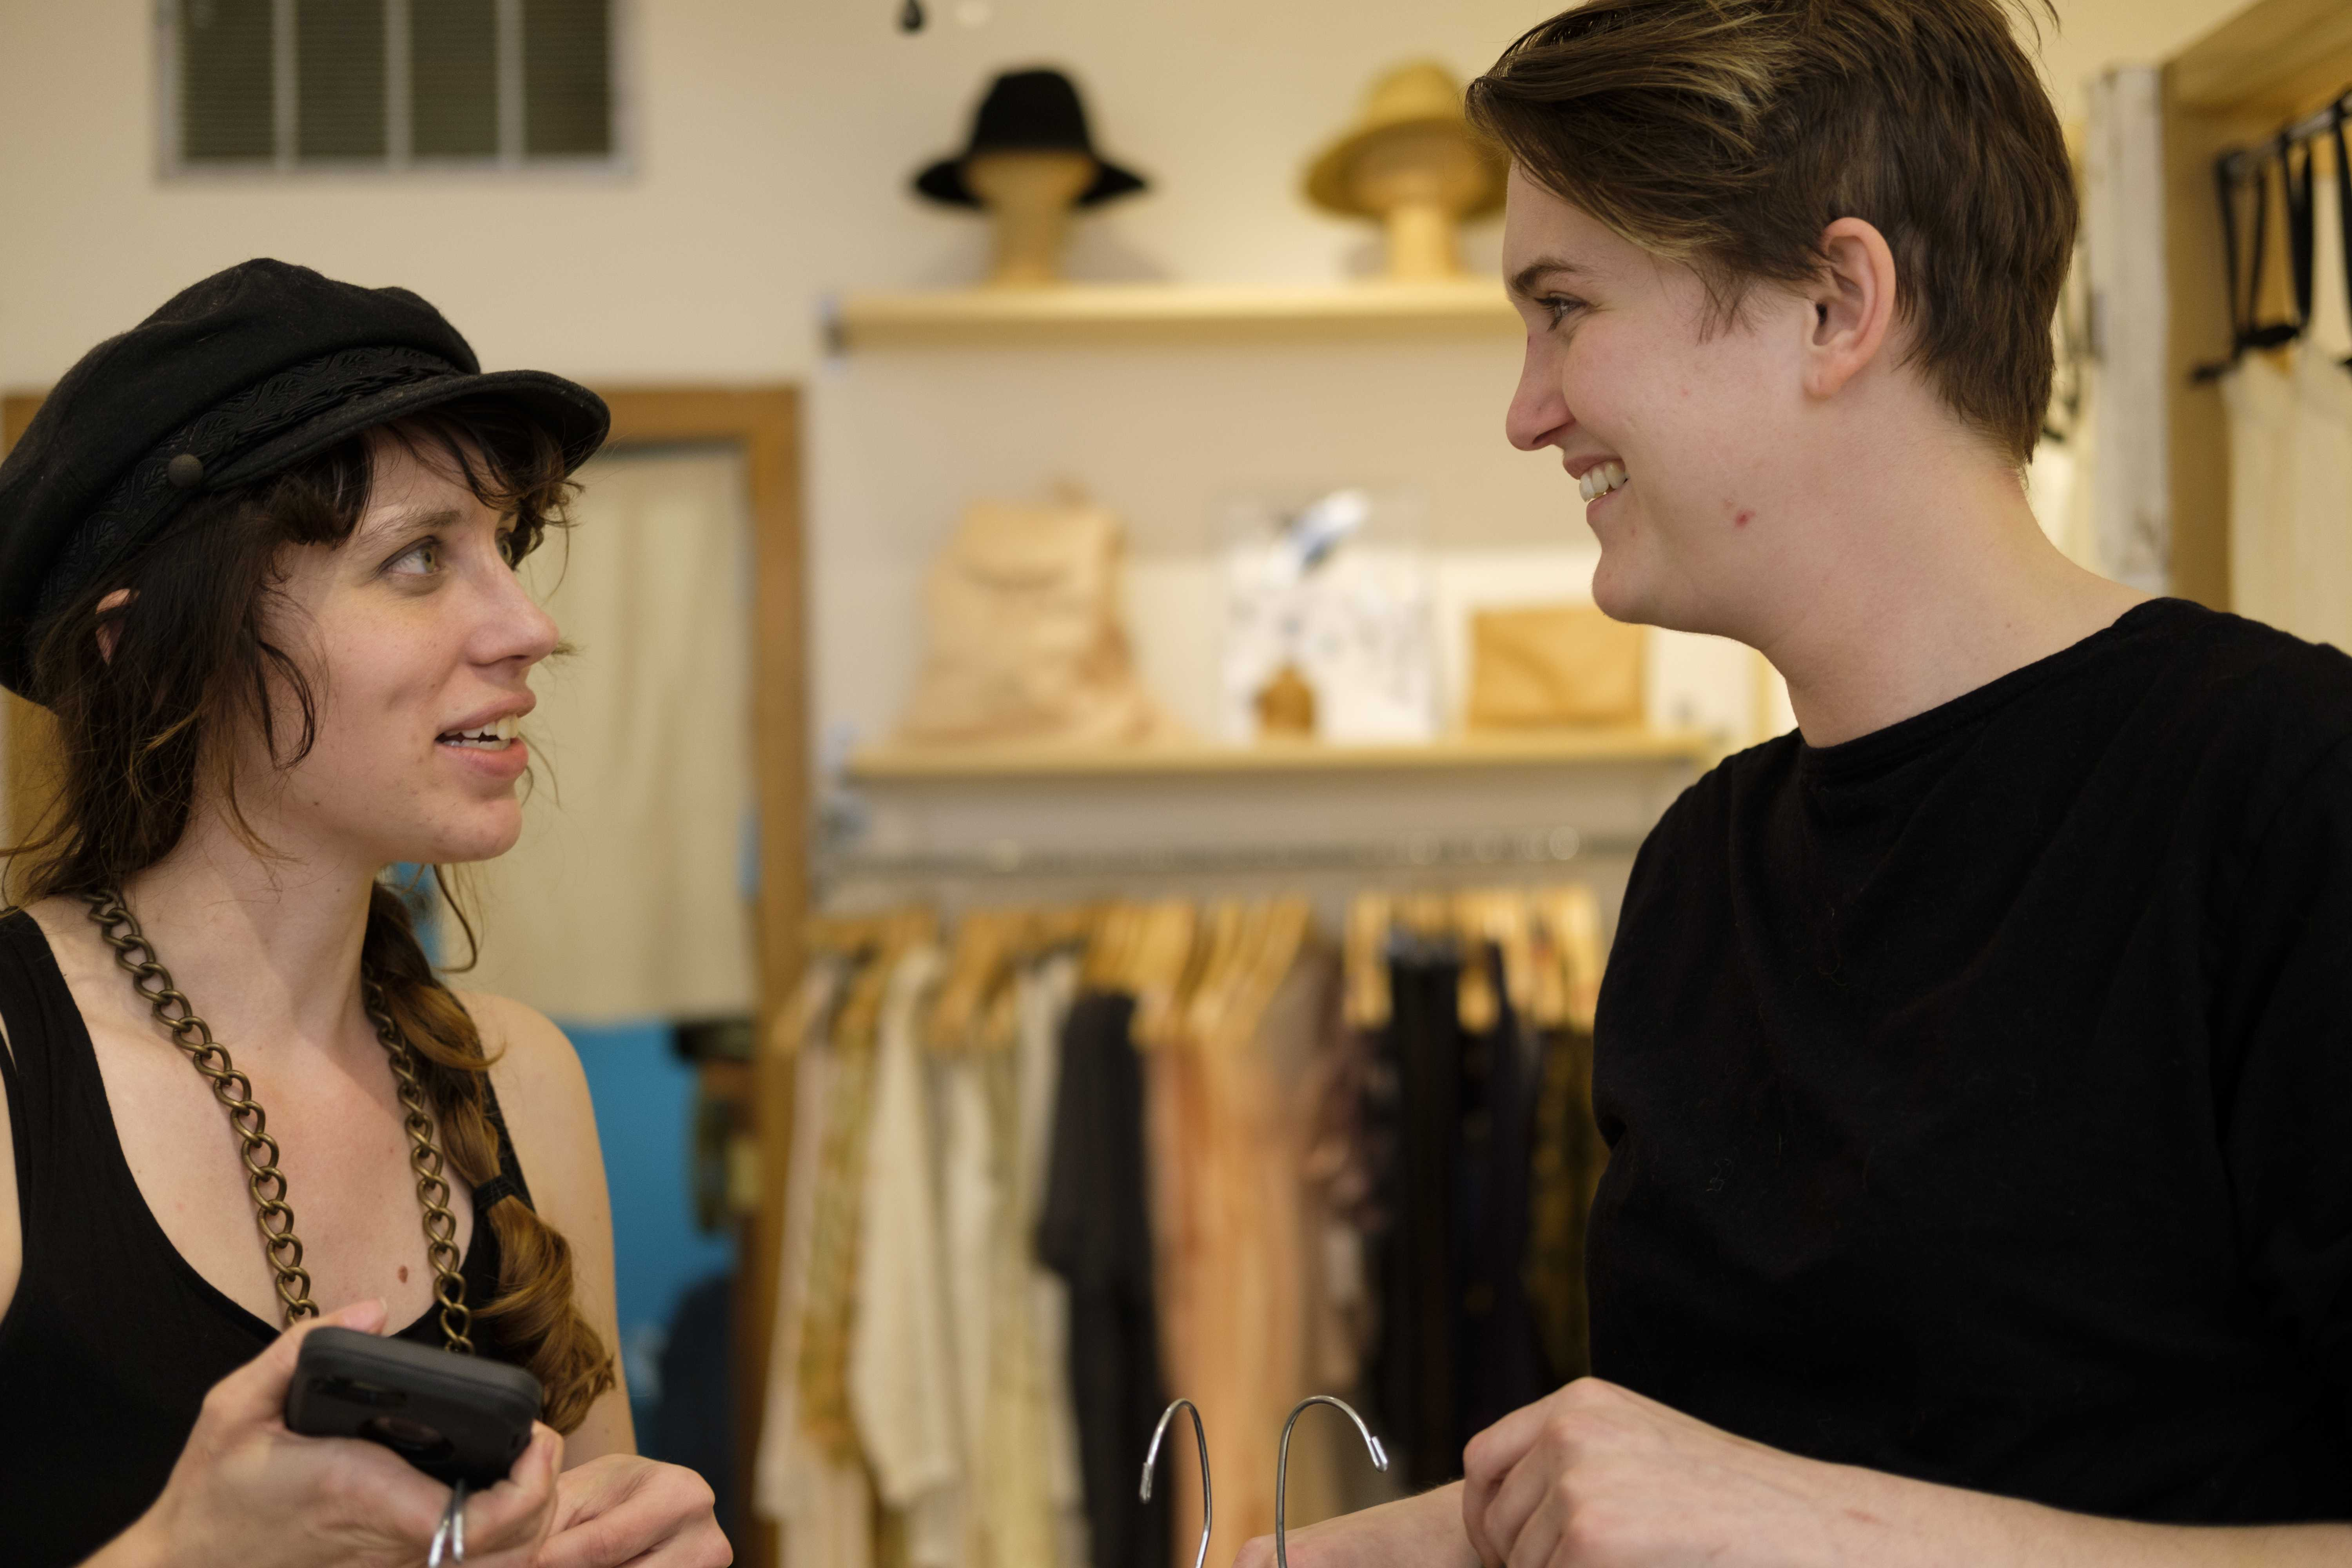 Lindsay Chastain of Sauvaged Jewelry conducts a fitting with Emma Liebe Hart in preparation for the Flyover Fashion festival on Thursday May 4, 2017. Chastain's designs will be featured in the TRVE VVILL show Friday at 10pm at RAD in Iowa City.